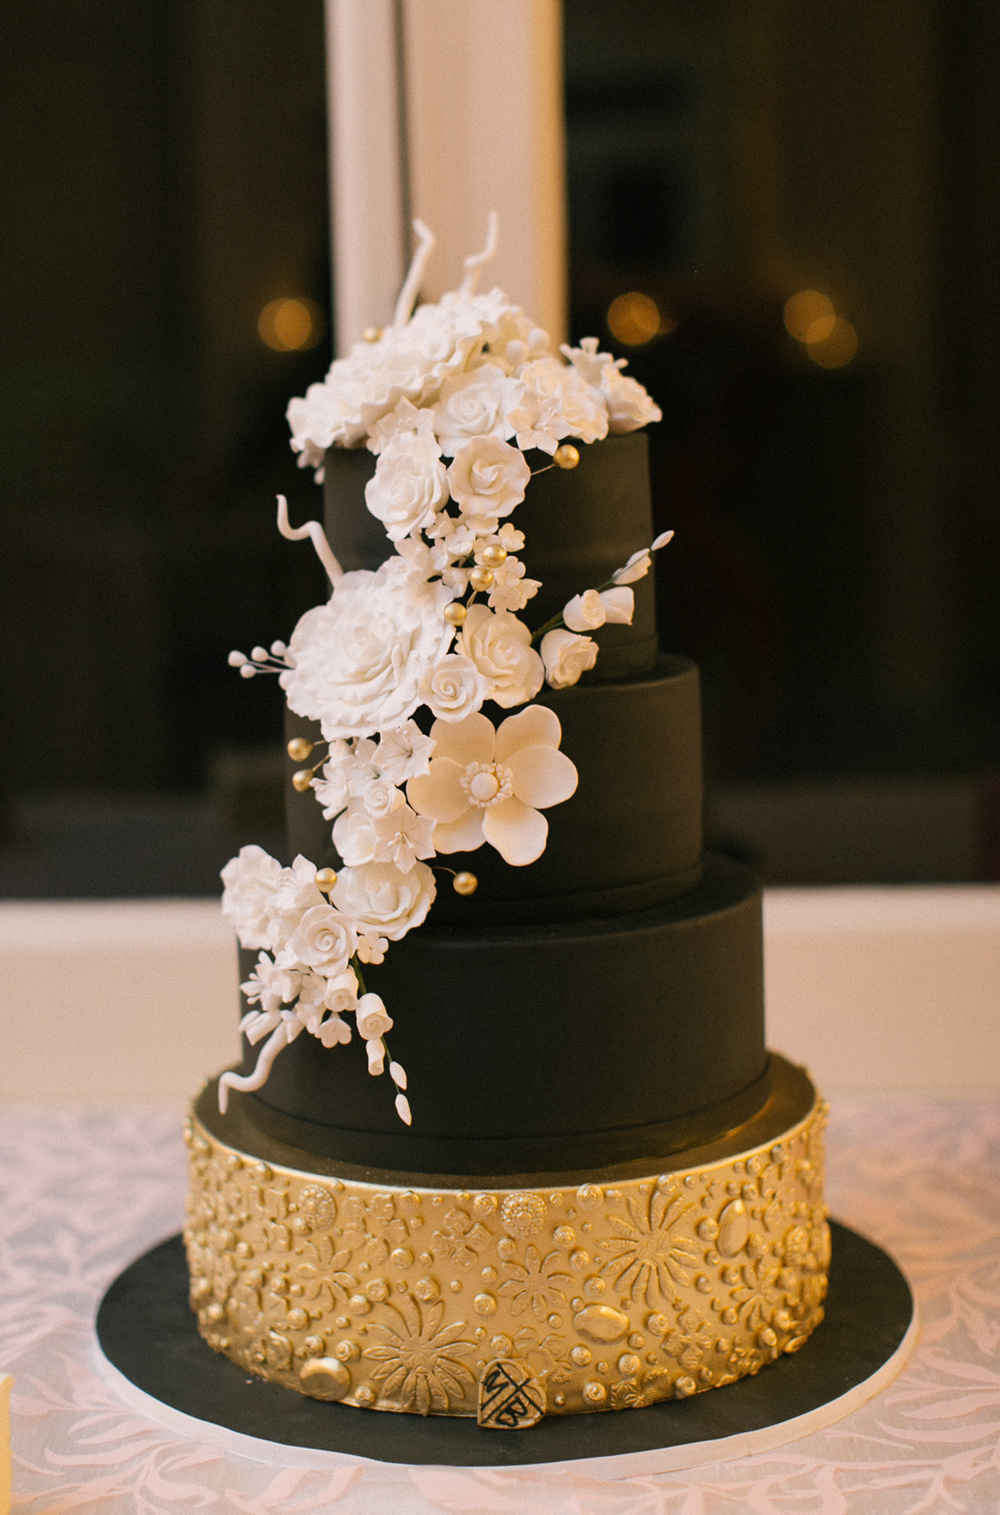 Black wedding cake with gold base and white sugar flowers on side